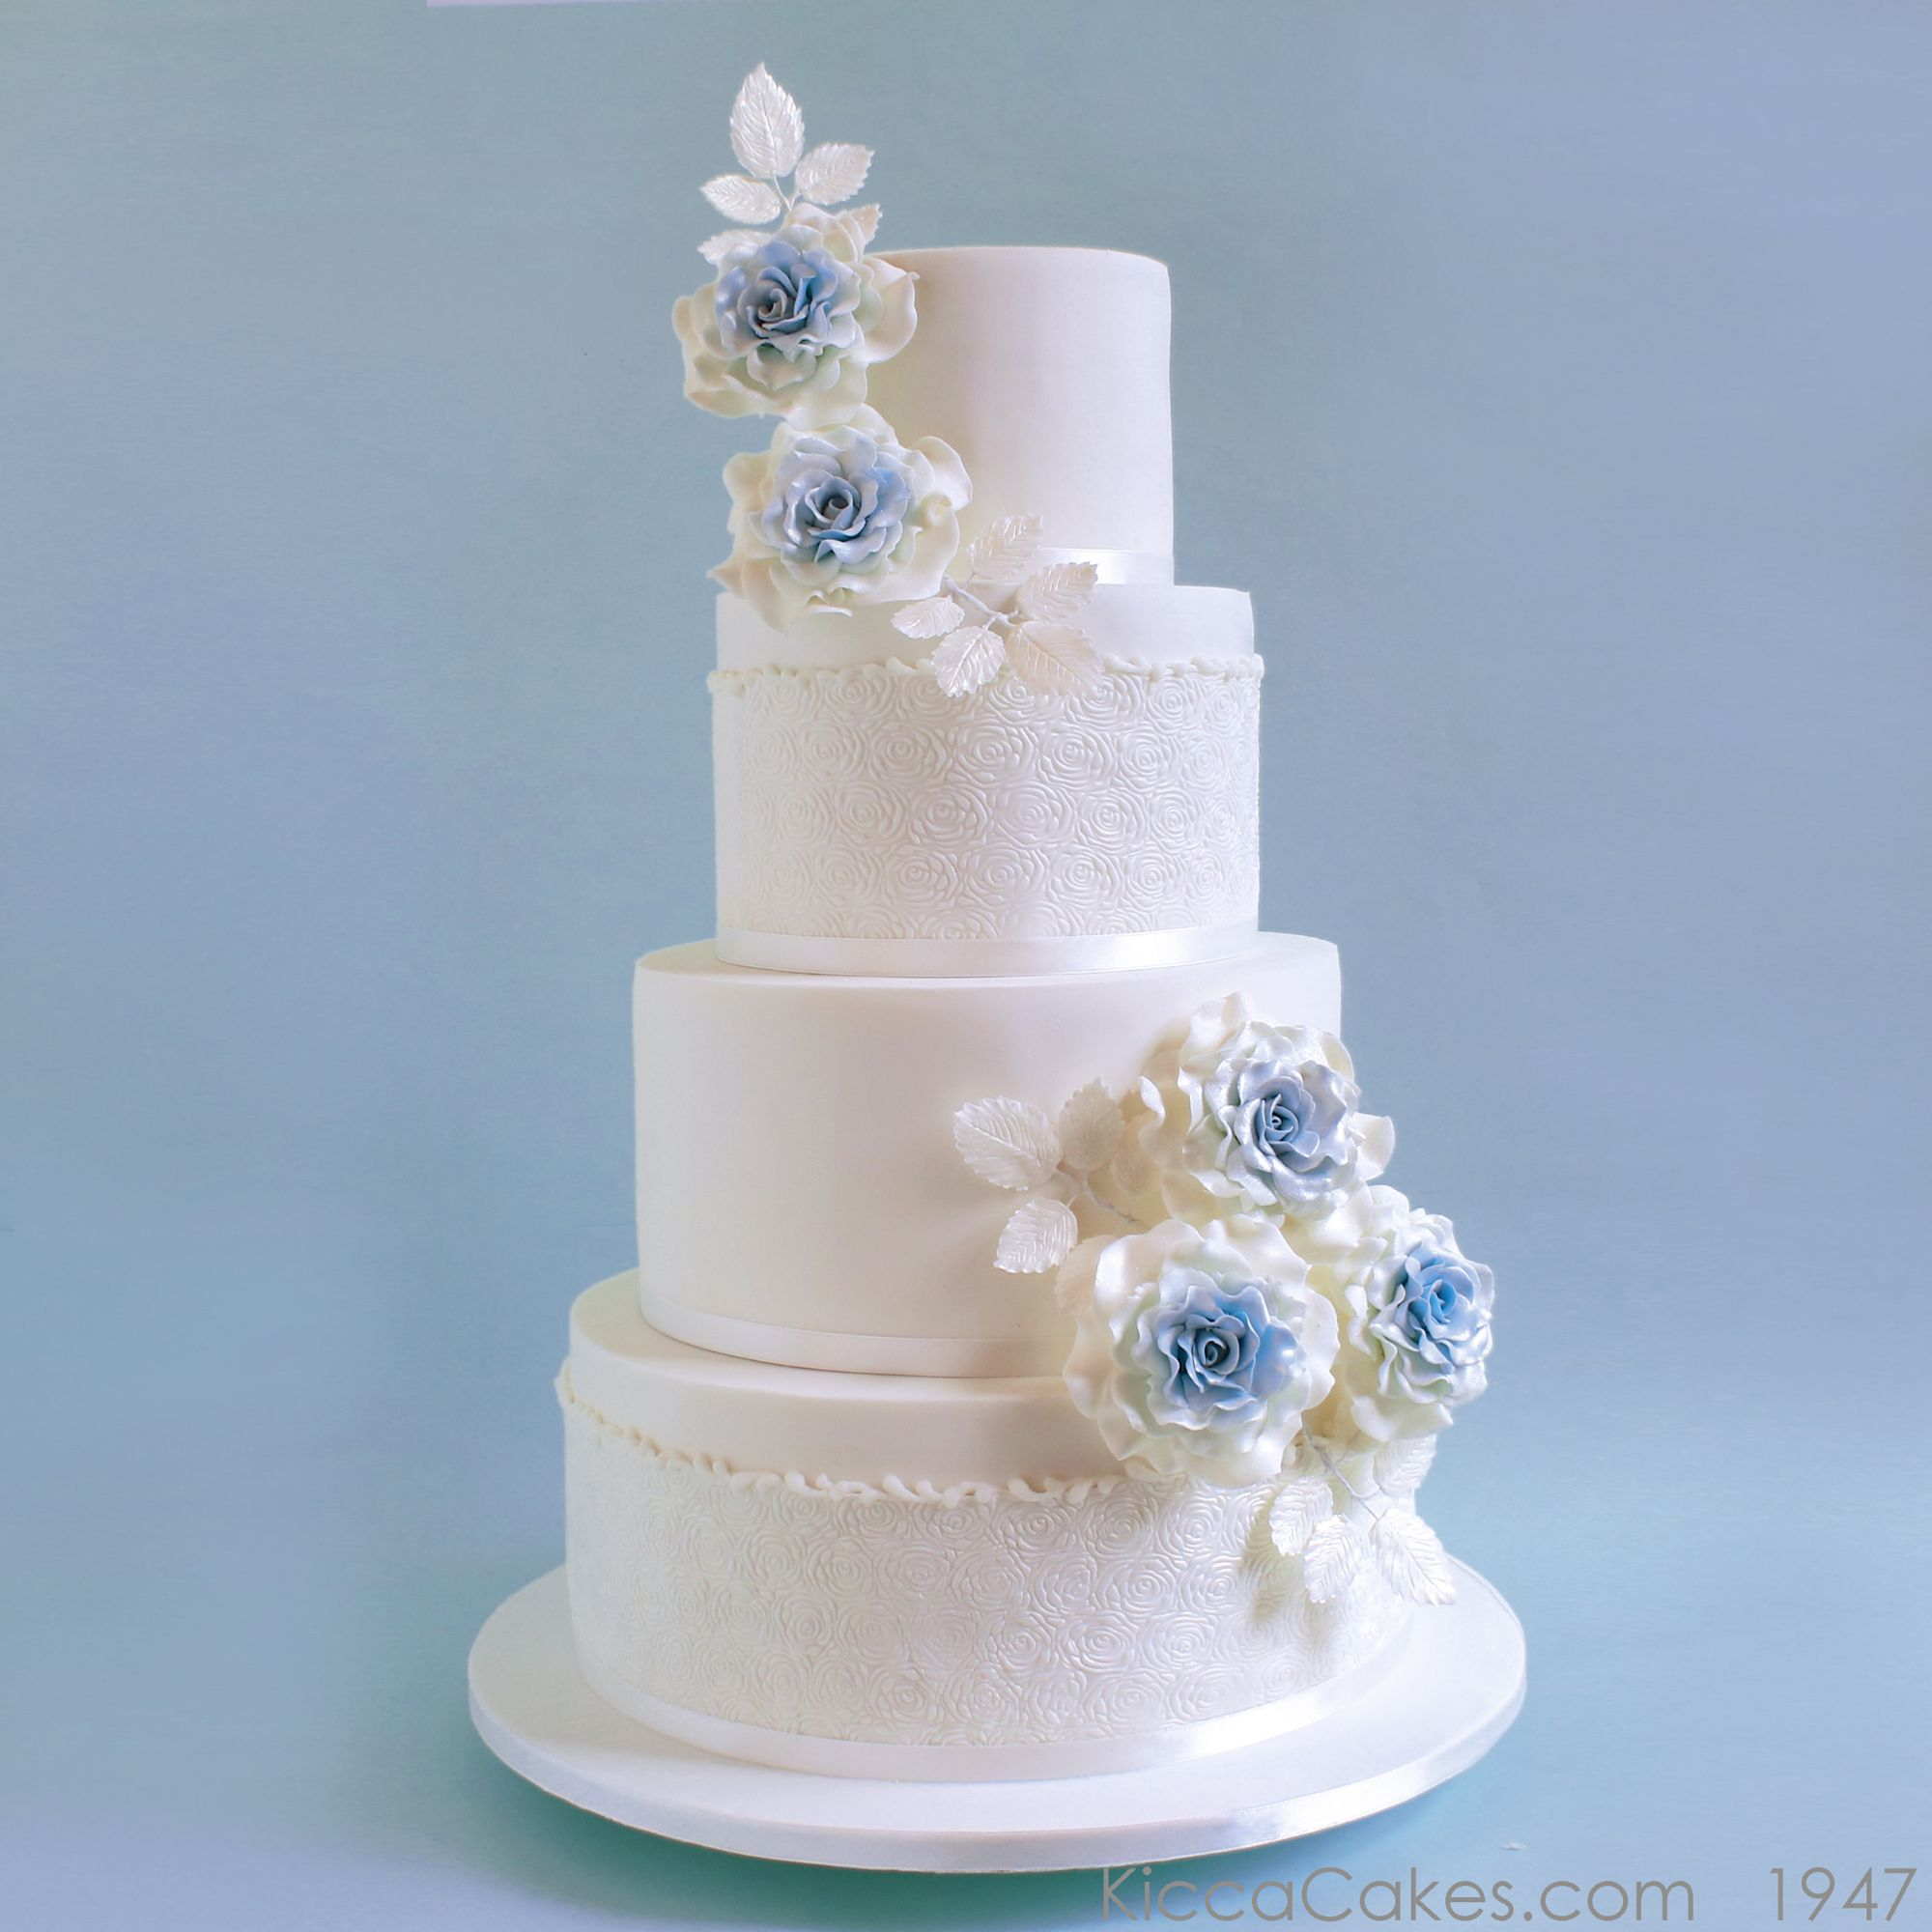 4 tiers wedding cake with blue sugar flowers